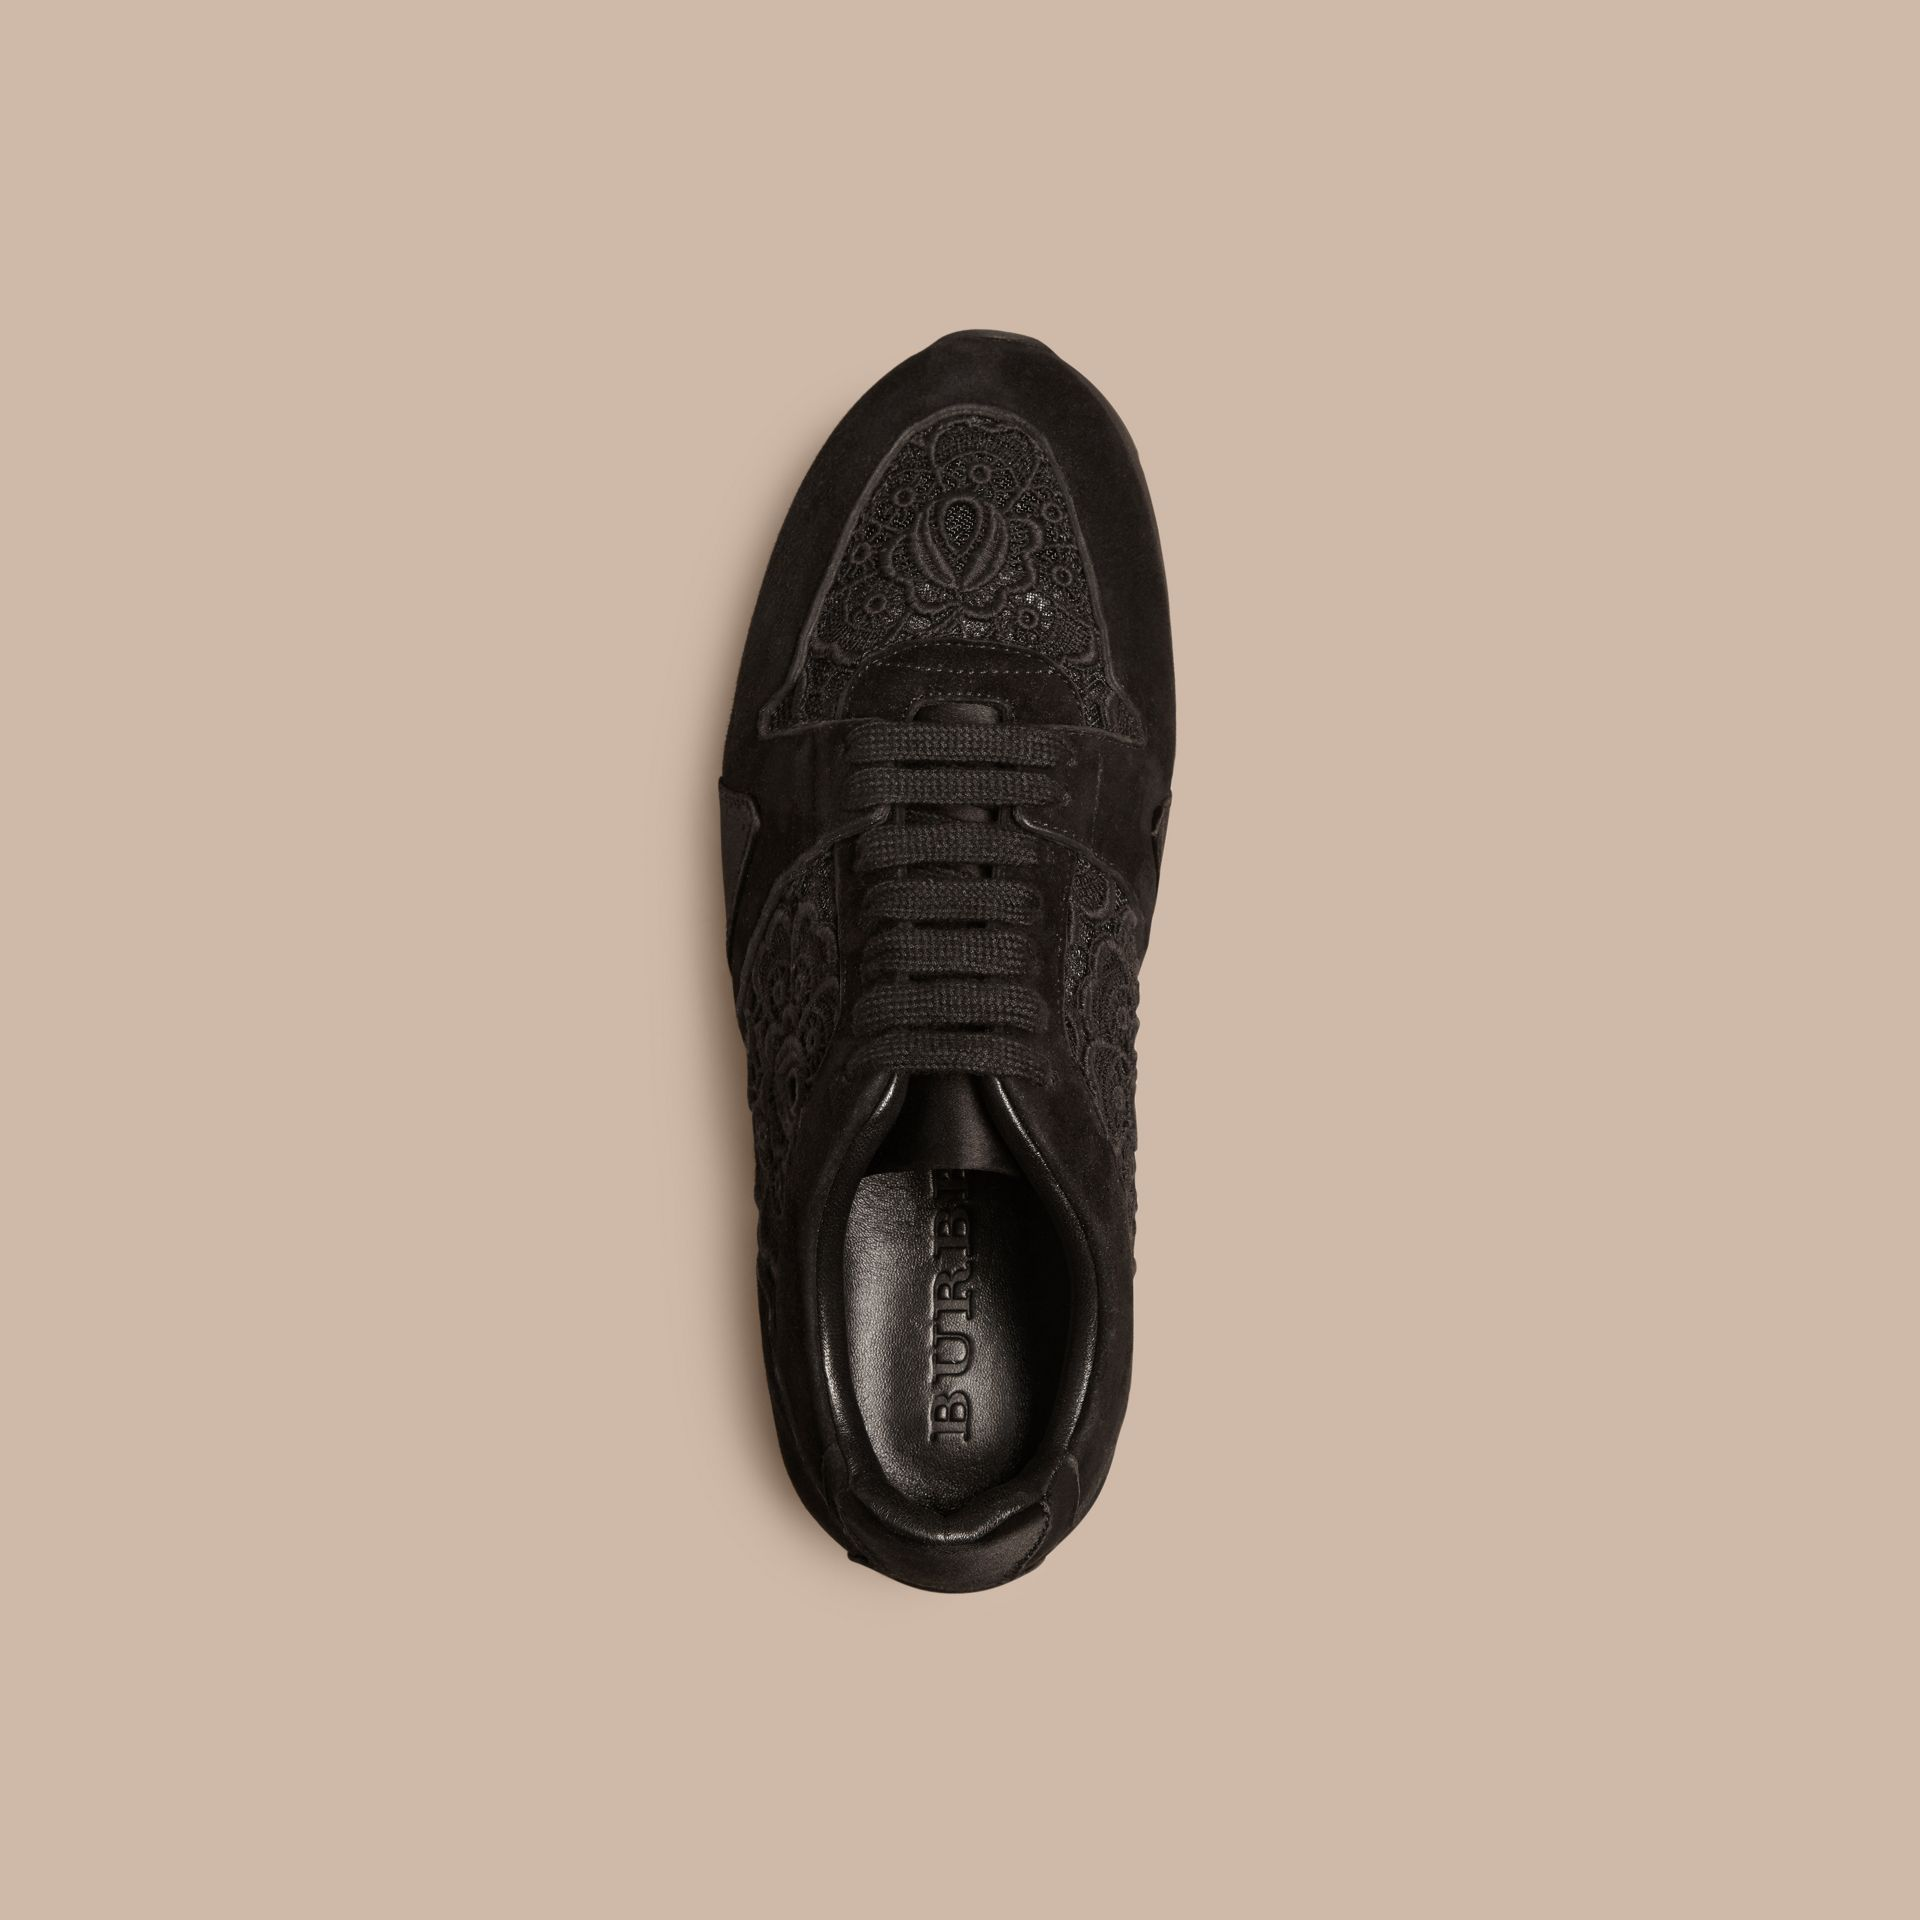 Black The Field Sneaker in Lace and Suede - gallery image 3